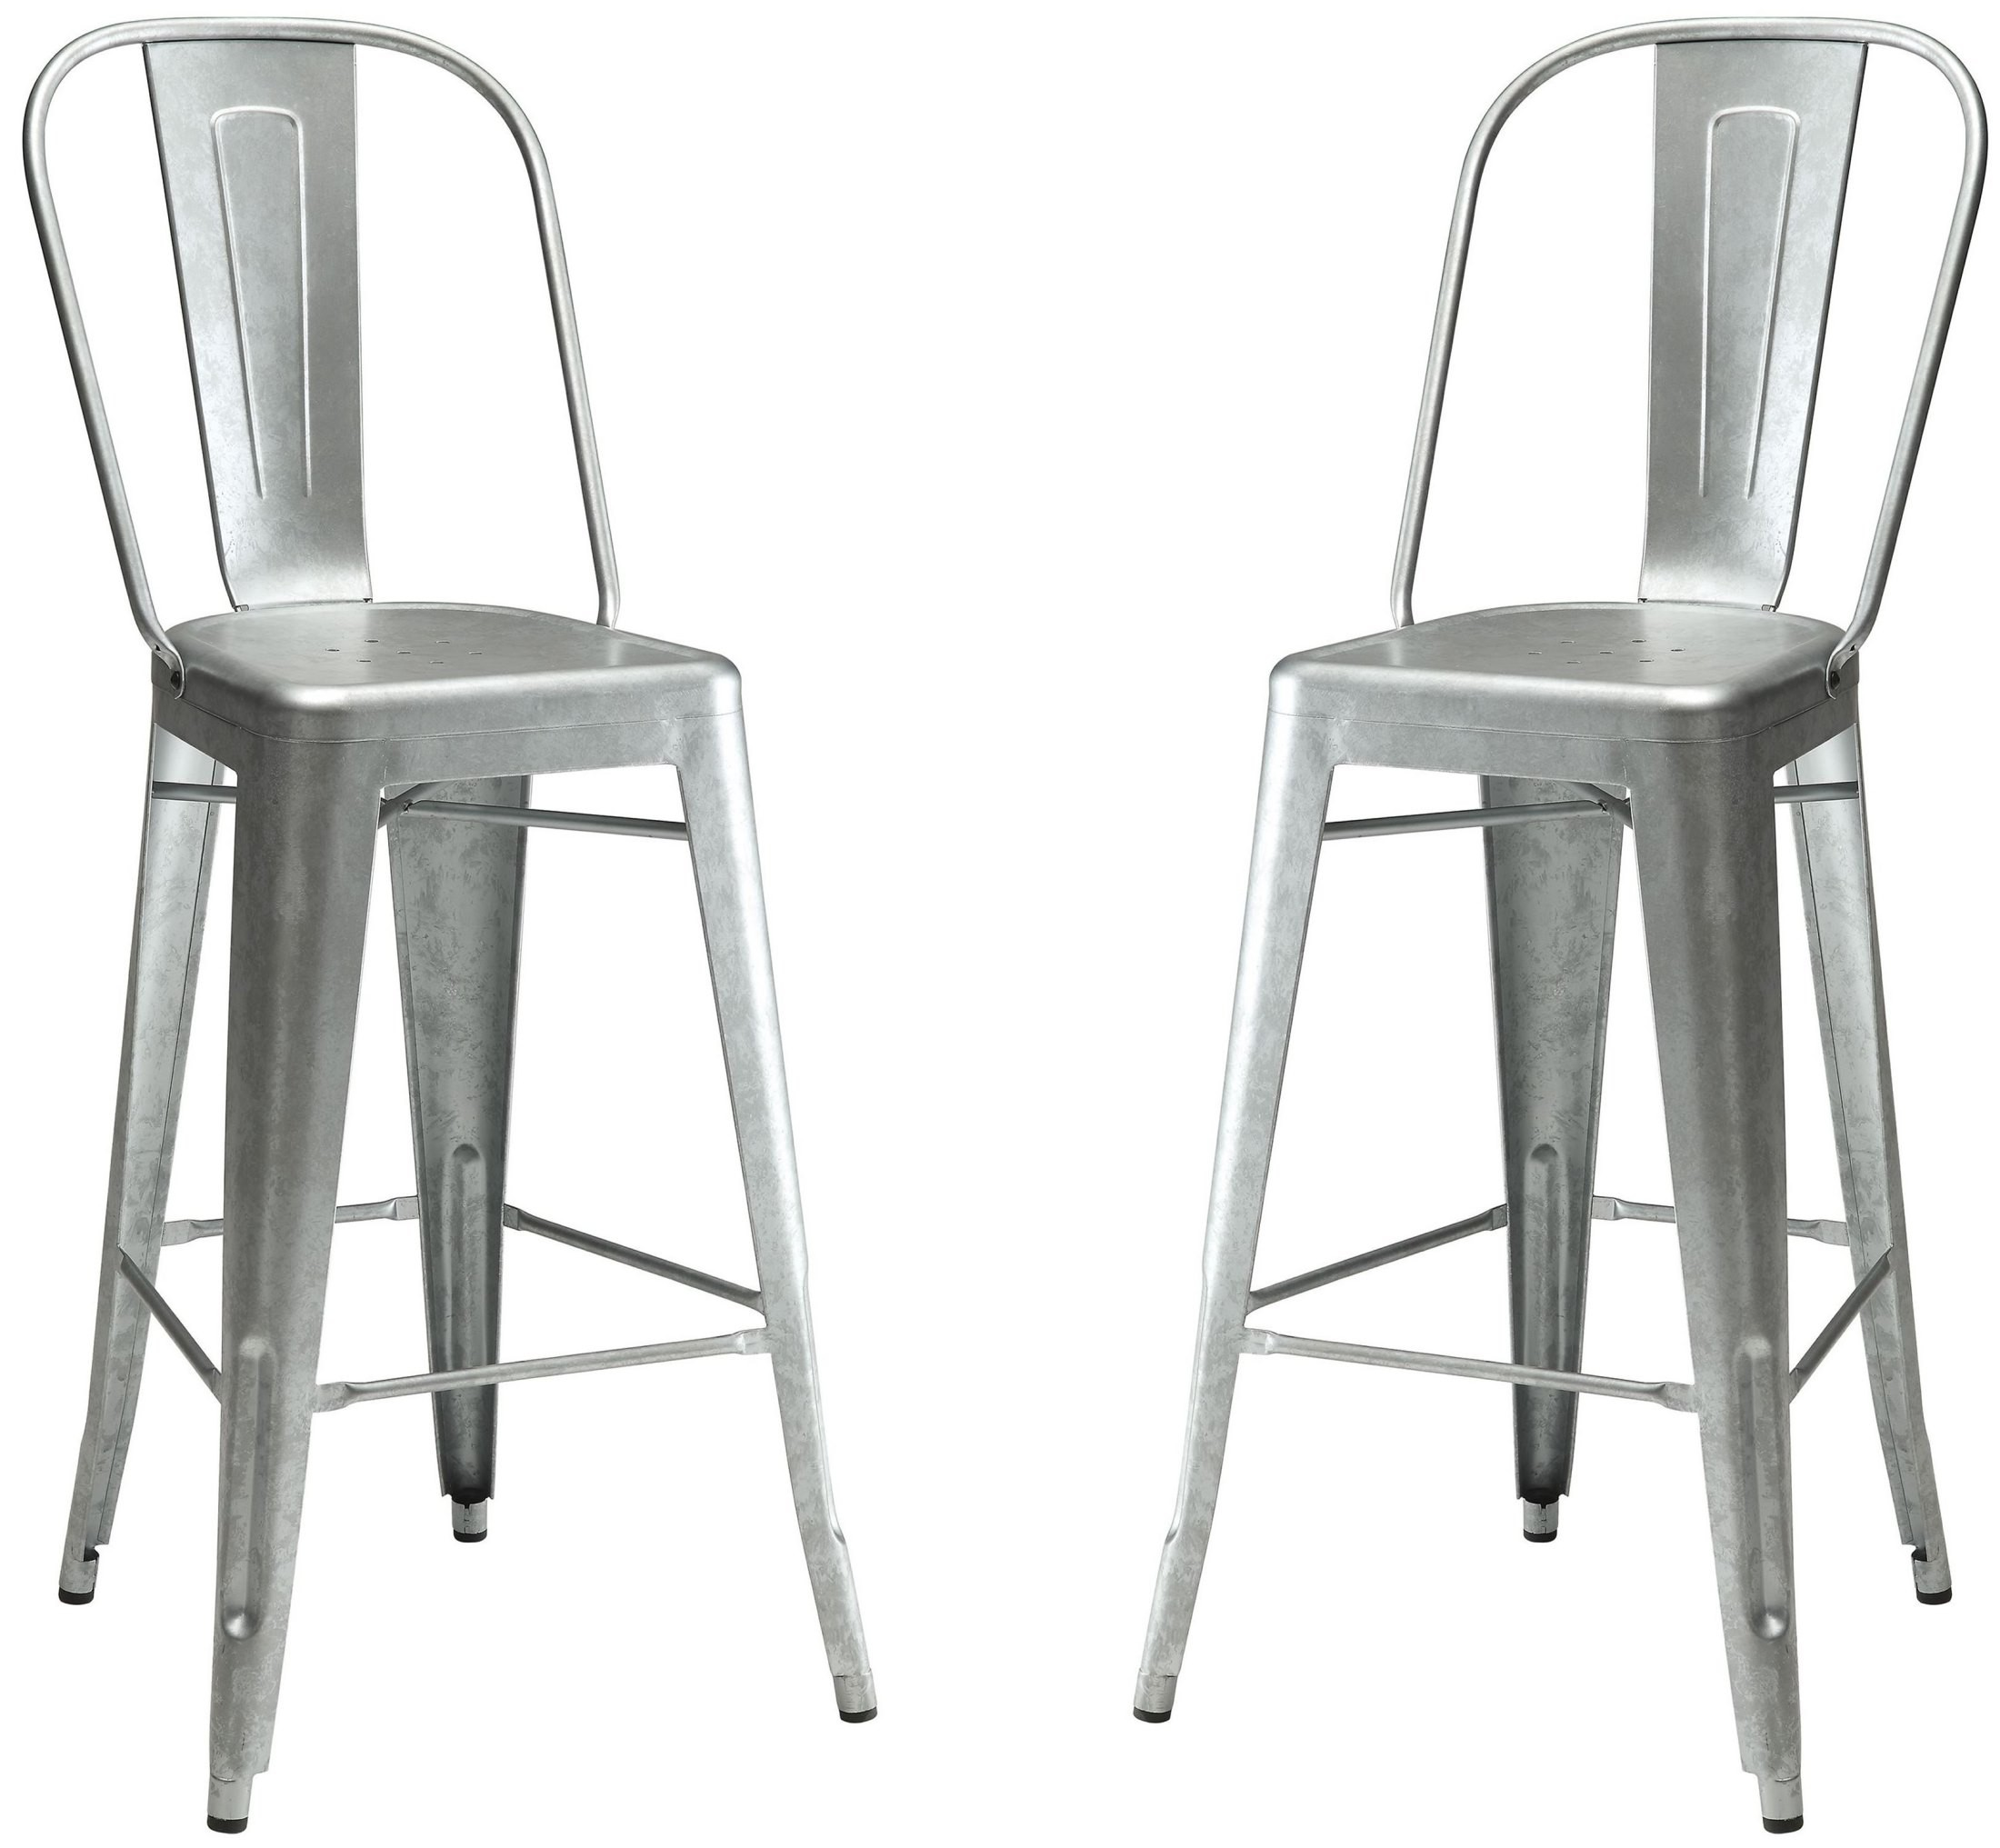 Galvanized Steel Chairs Galvanized Metal Bar Stool Set Of 2 From Coaster Coleman